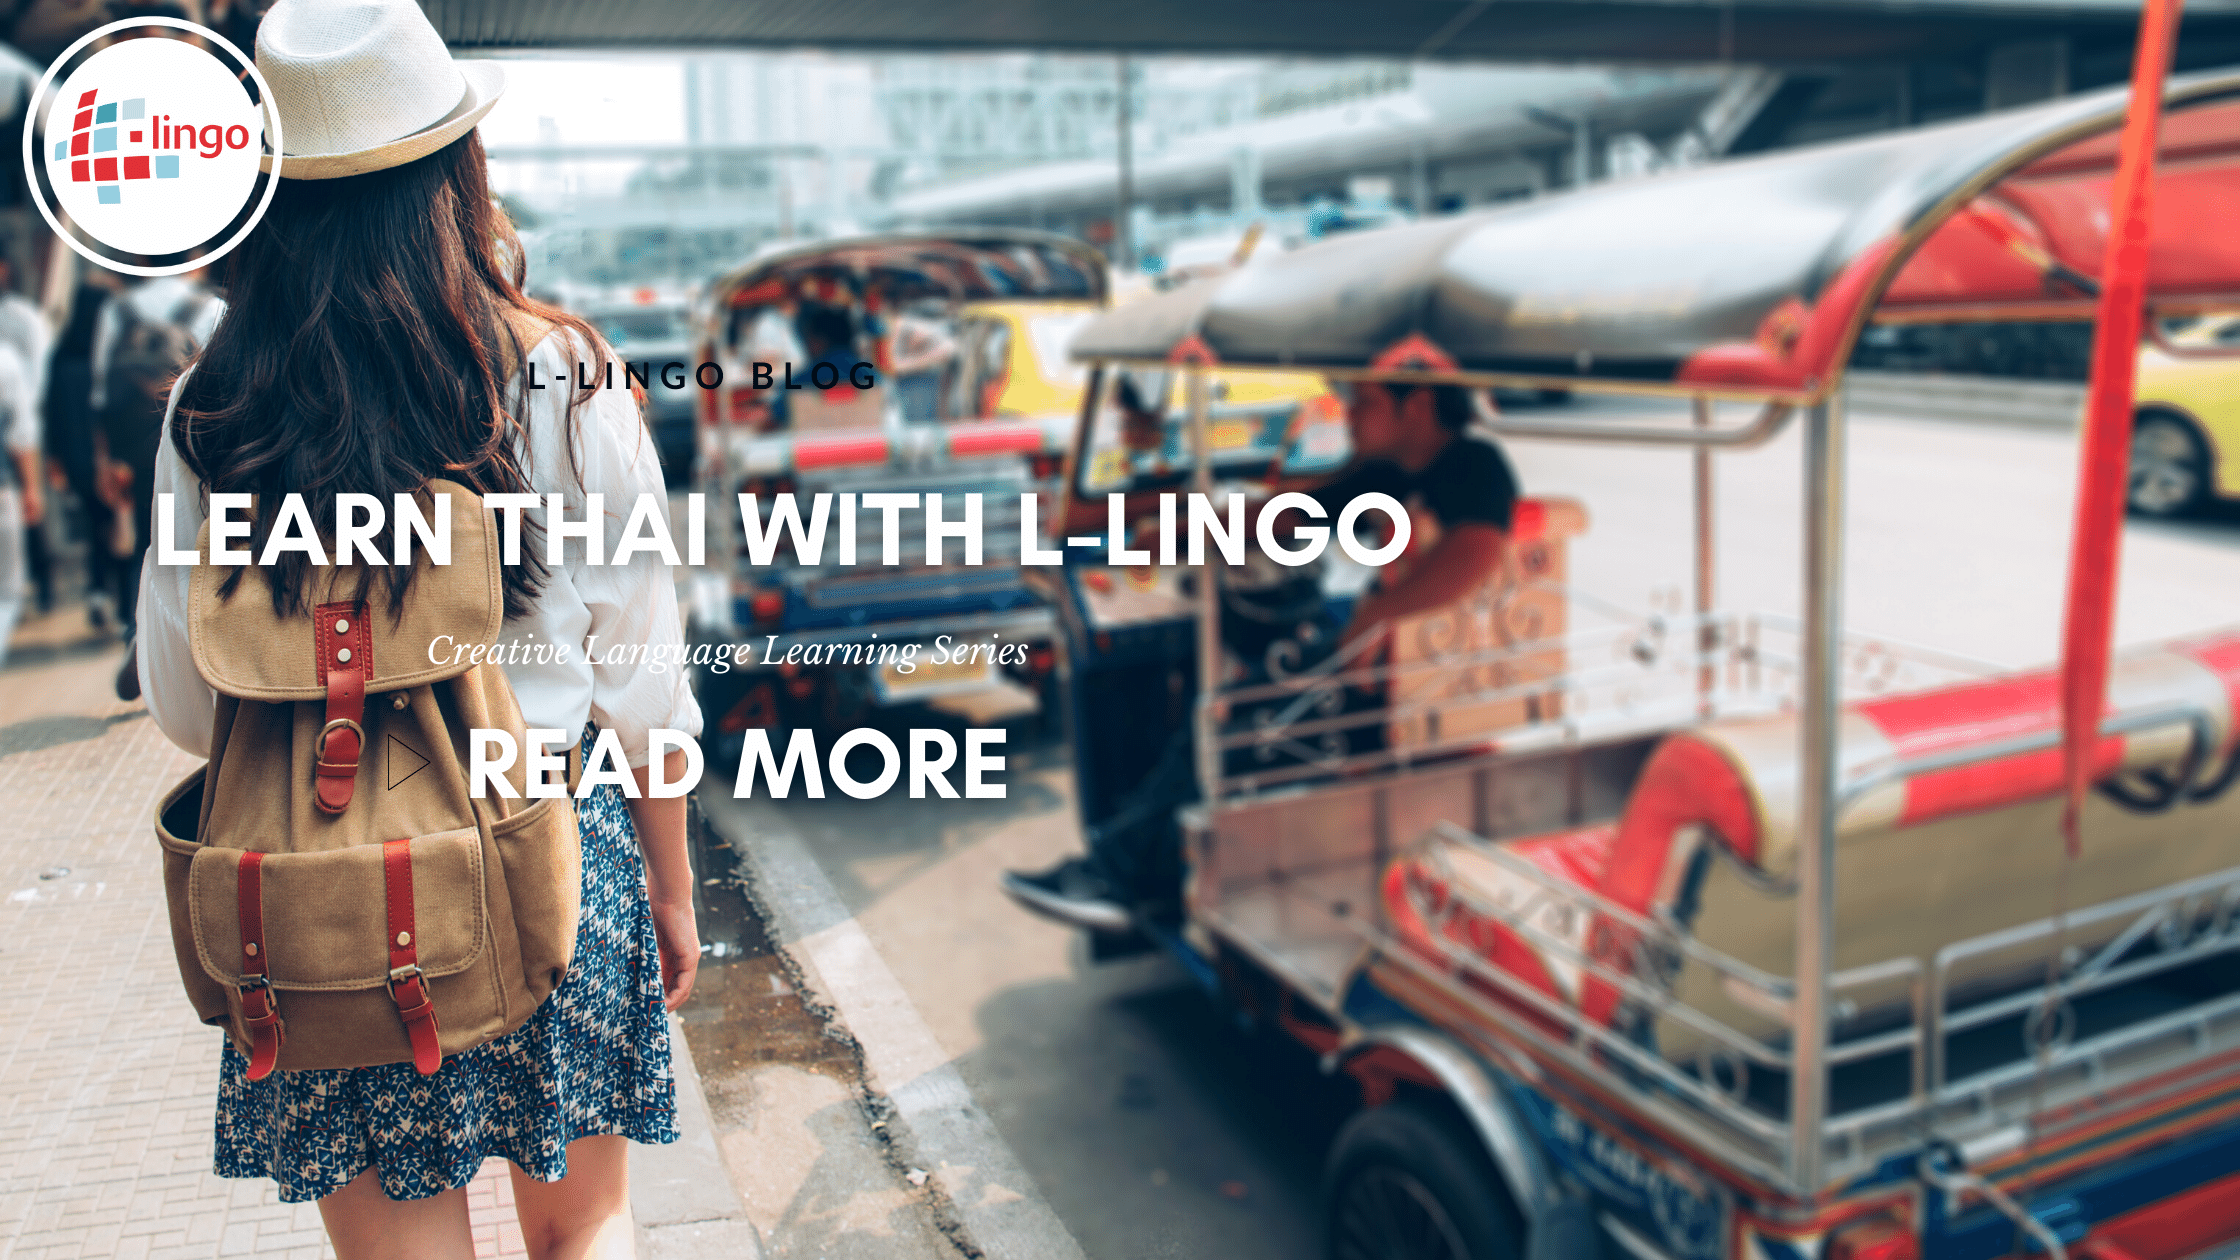 Learn Thai With L-Lingo